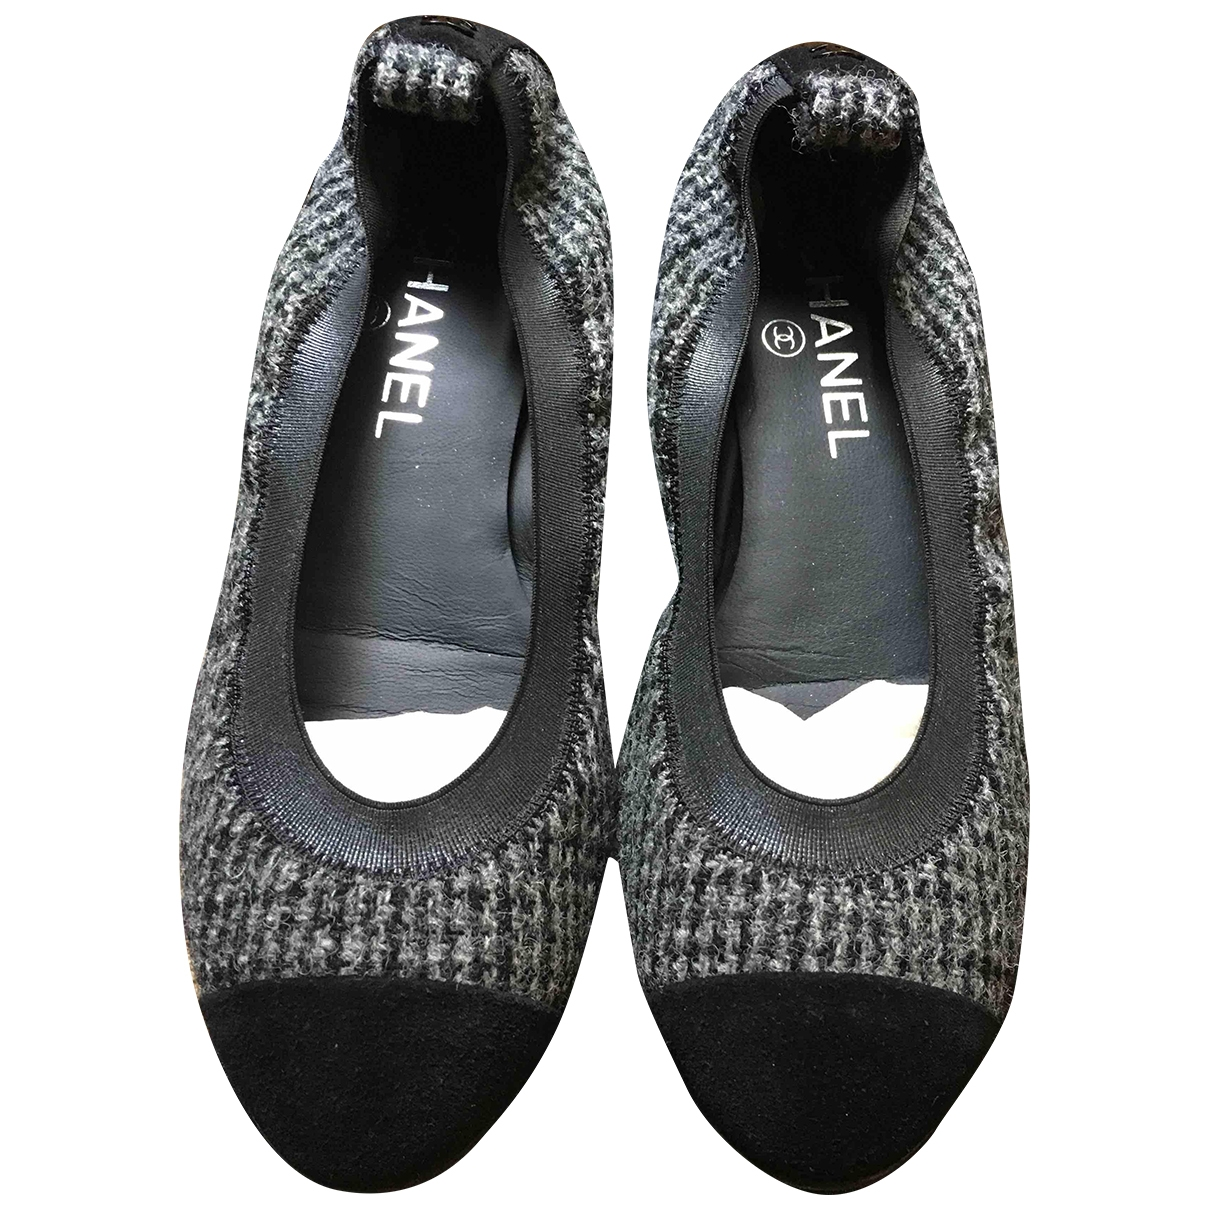 Chanel \N Ballerinas in  Grau Tweed